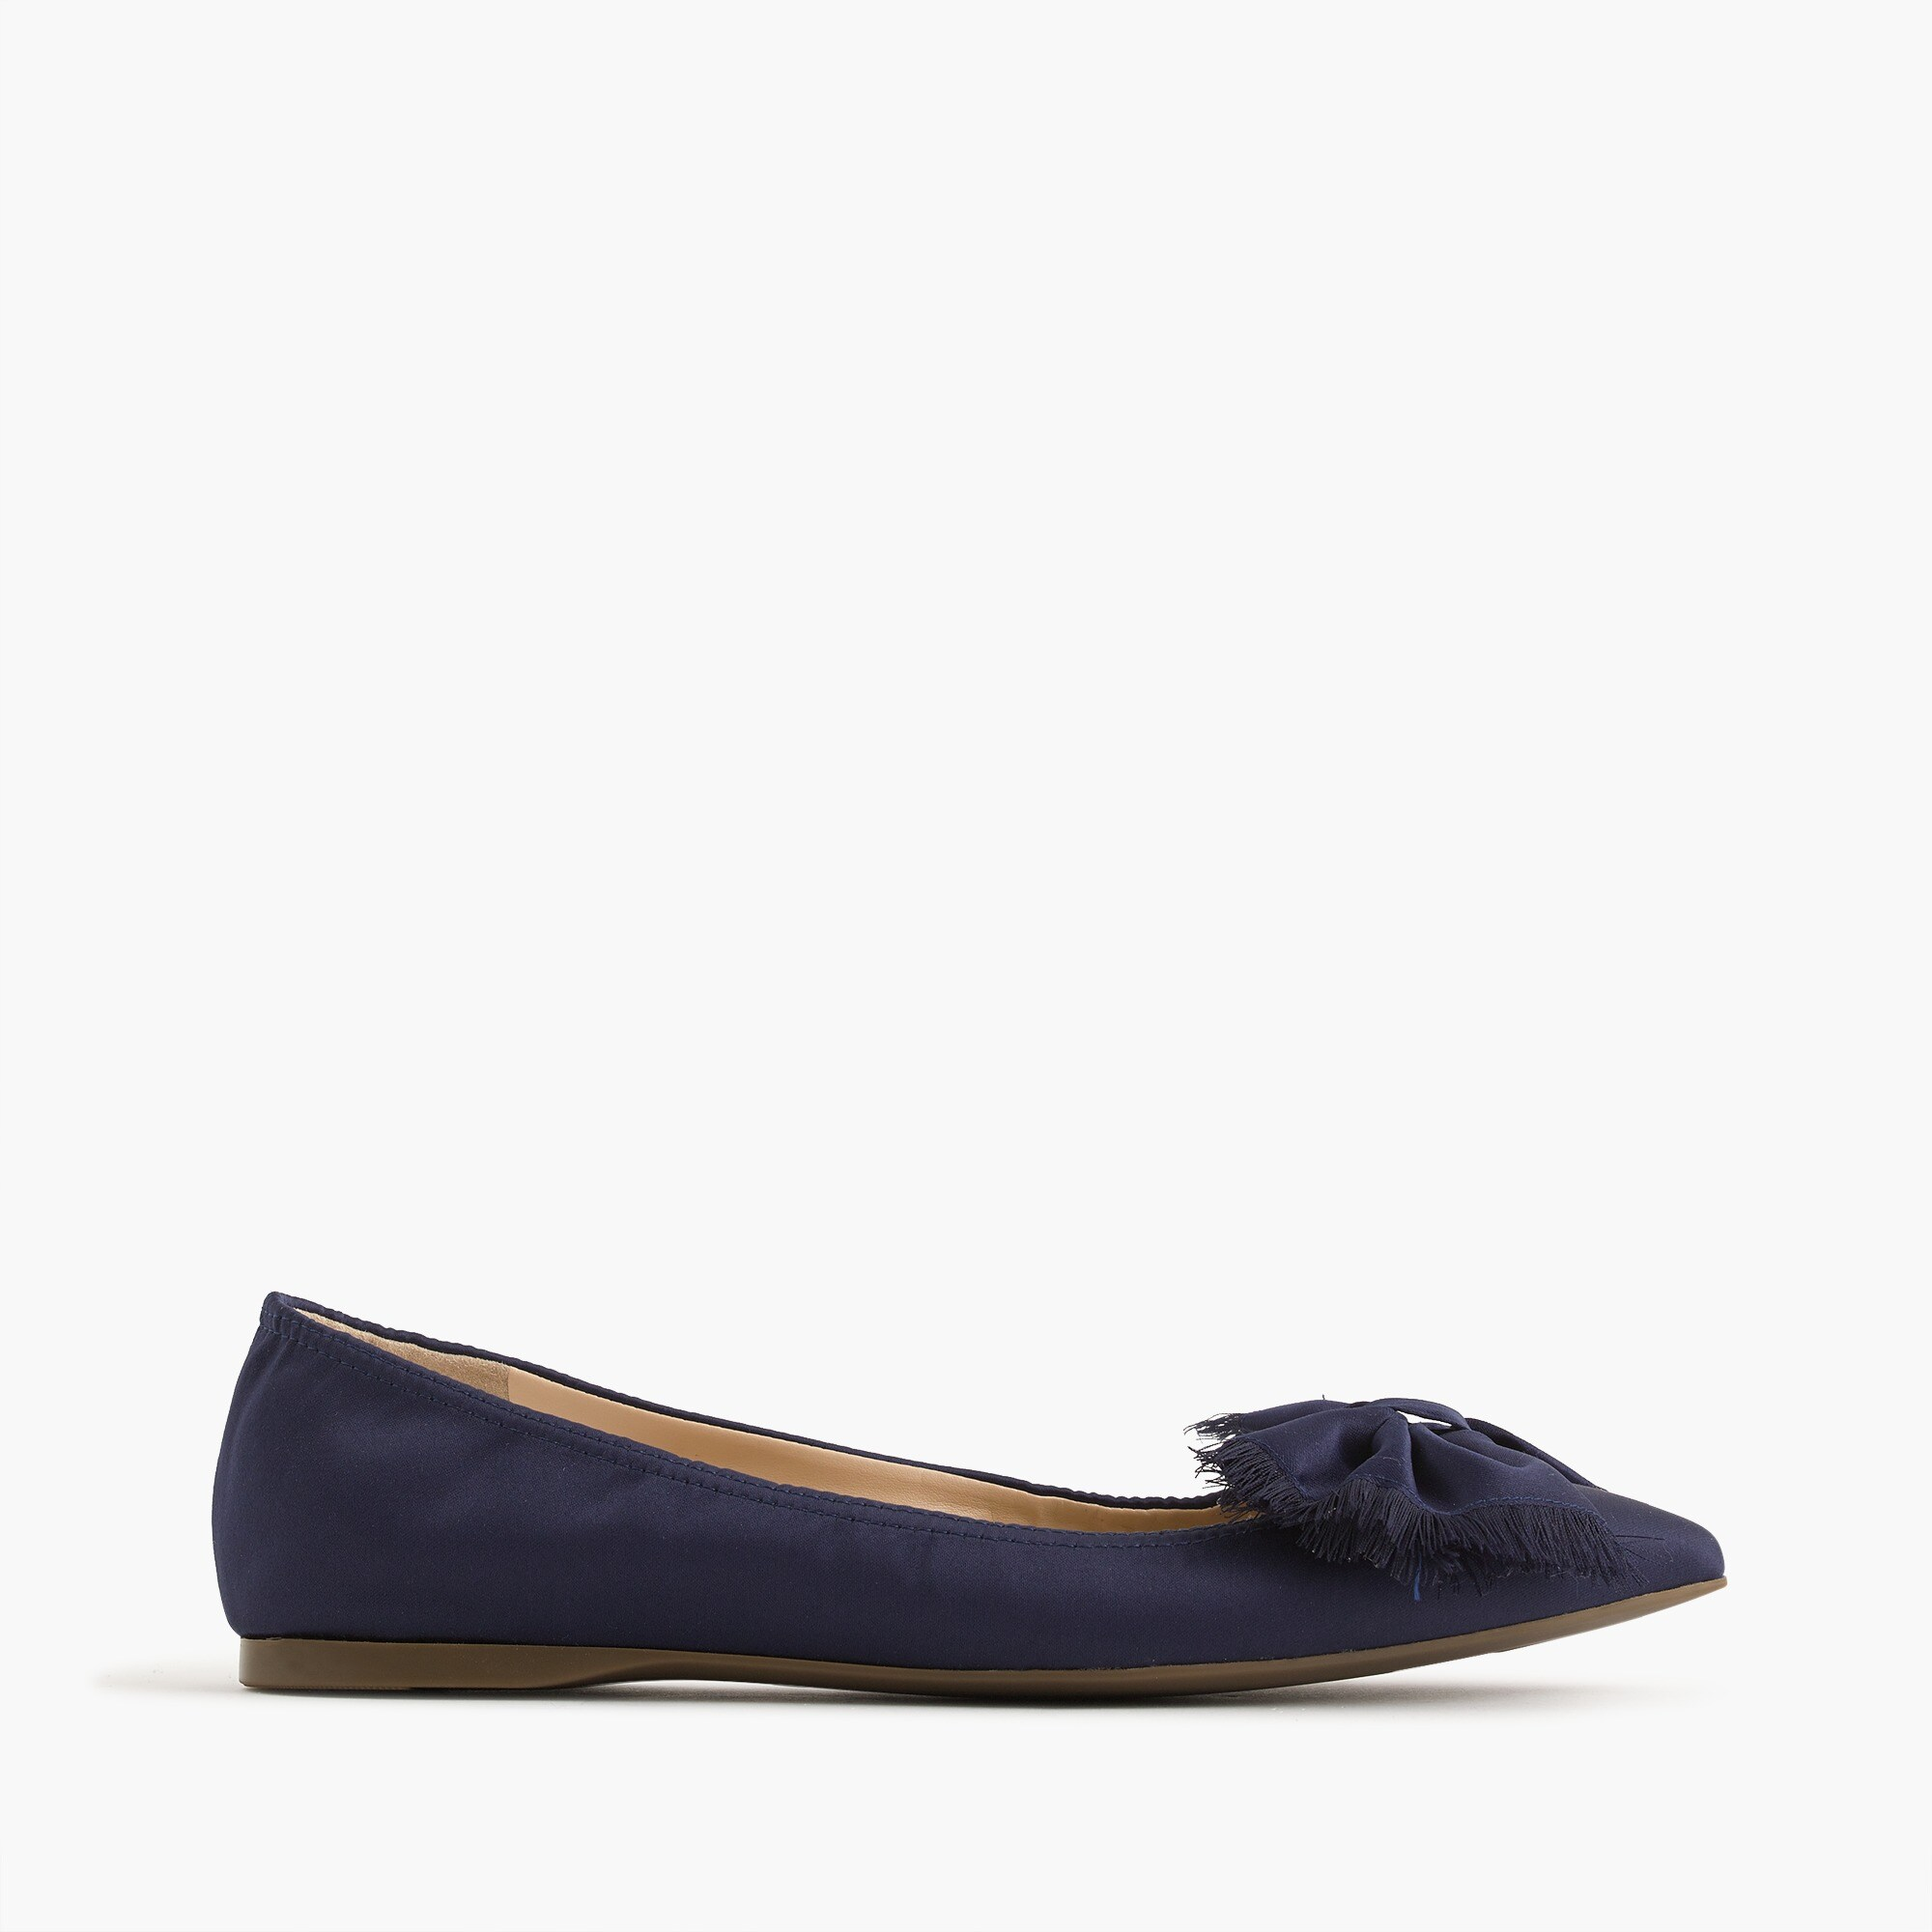 Lottie flats in satin